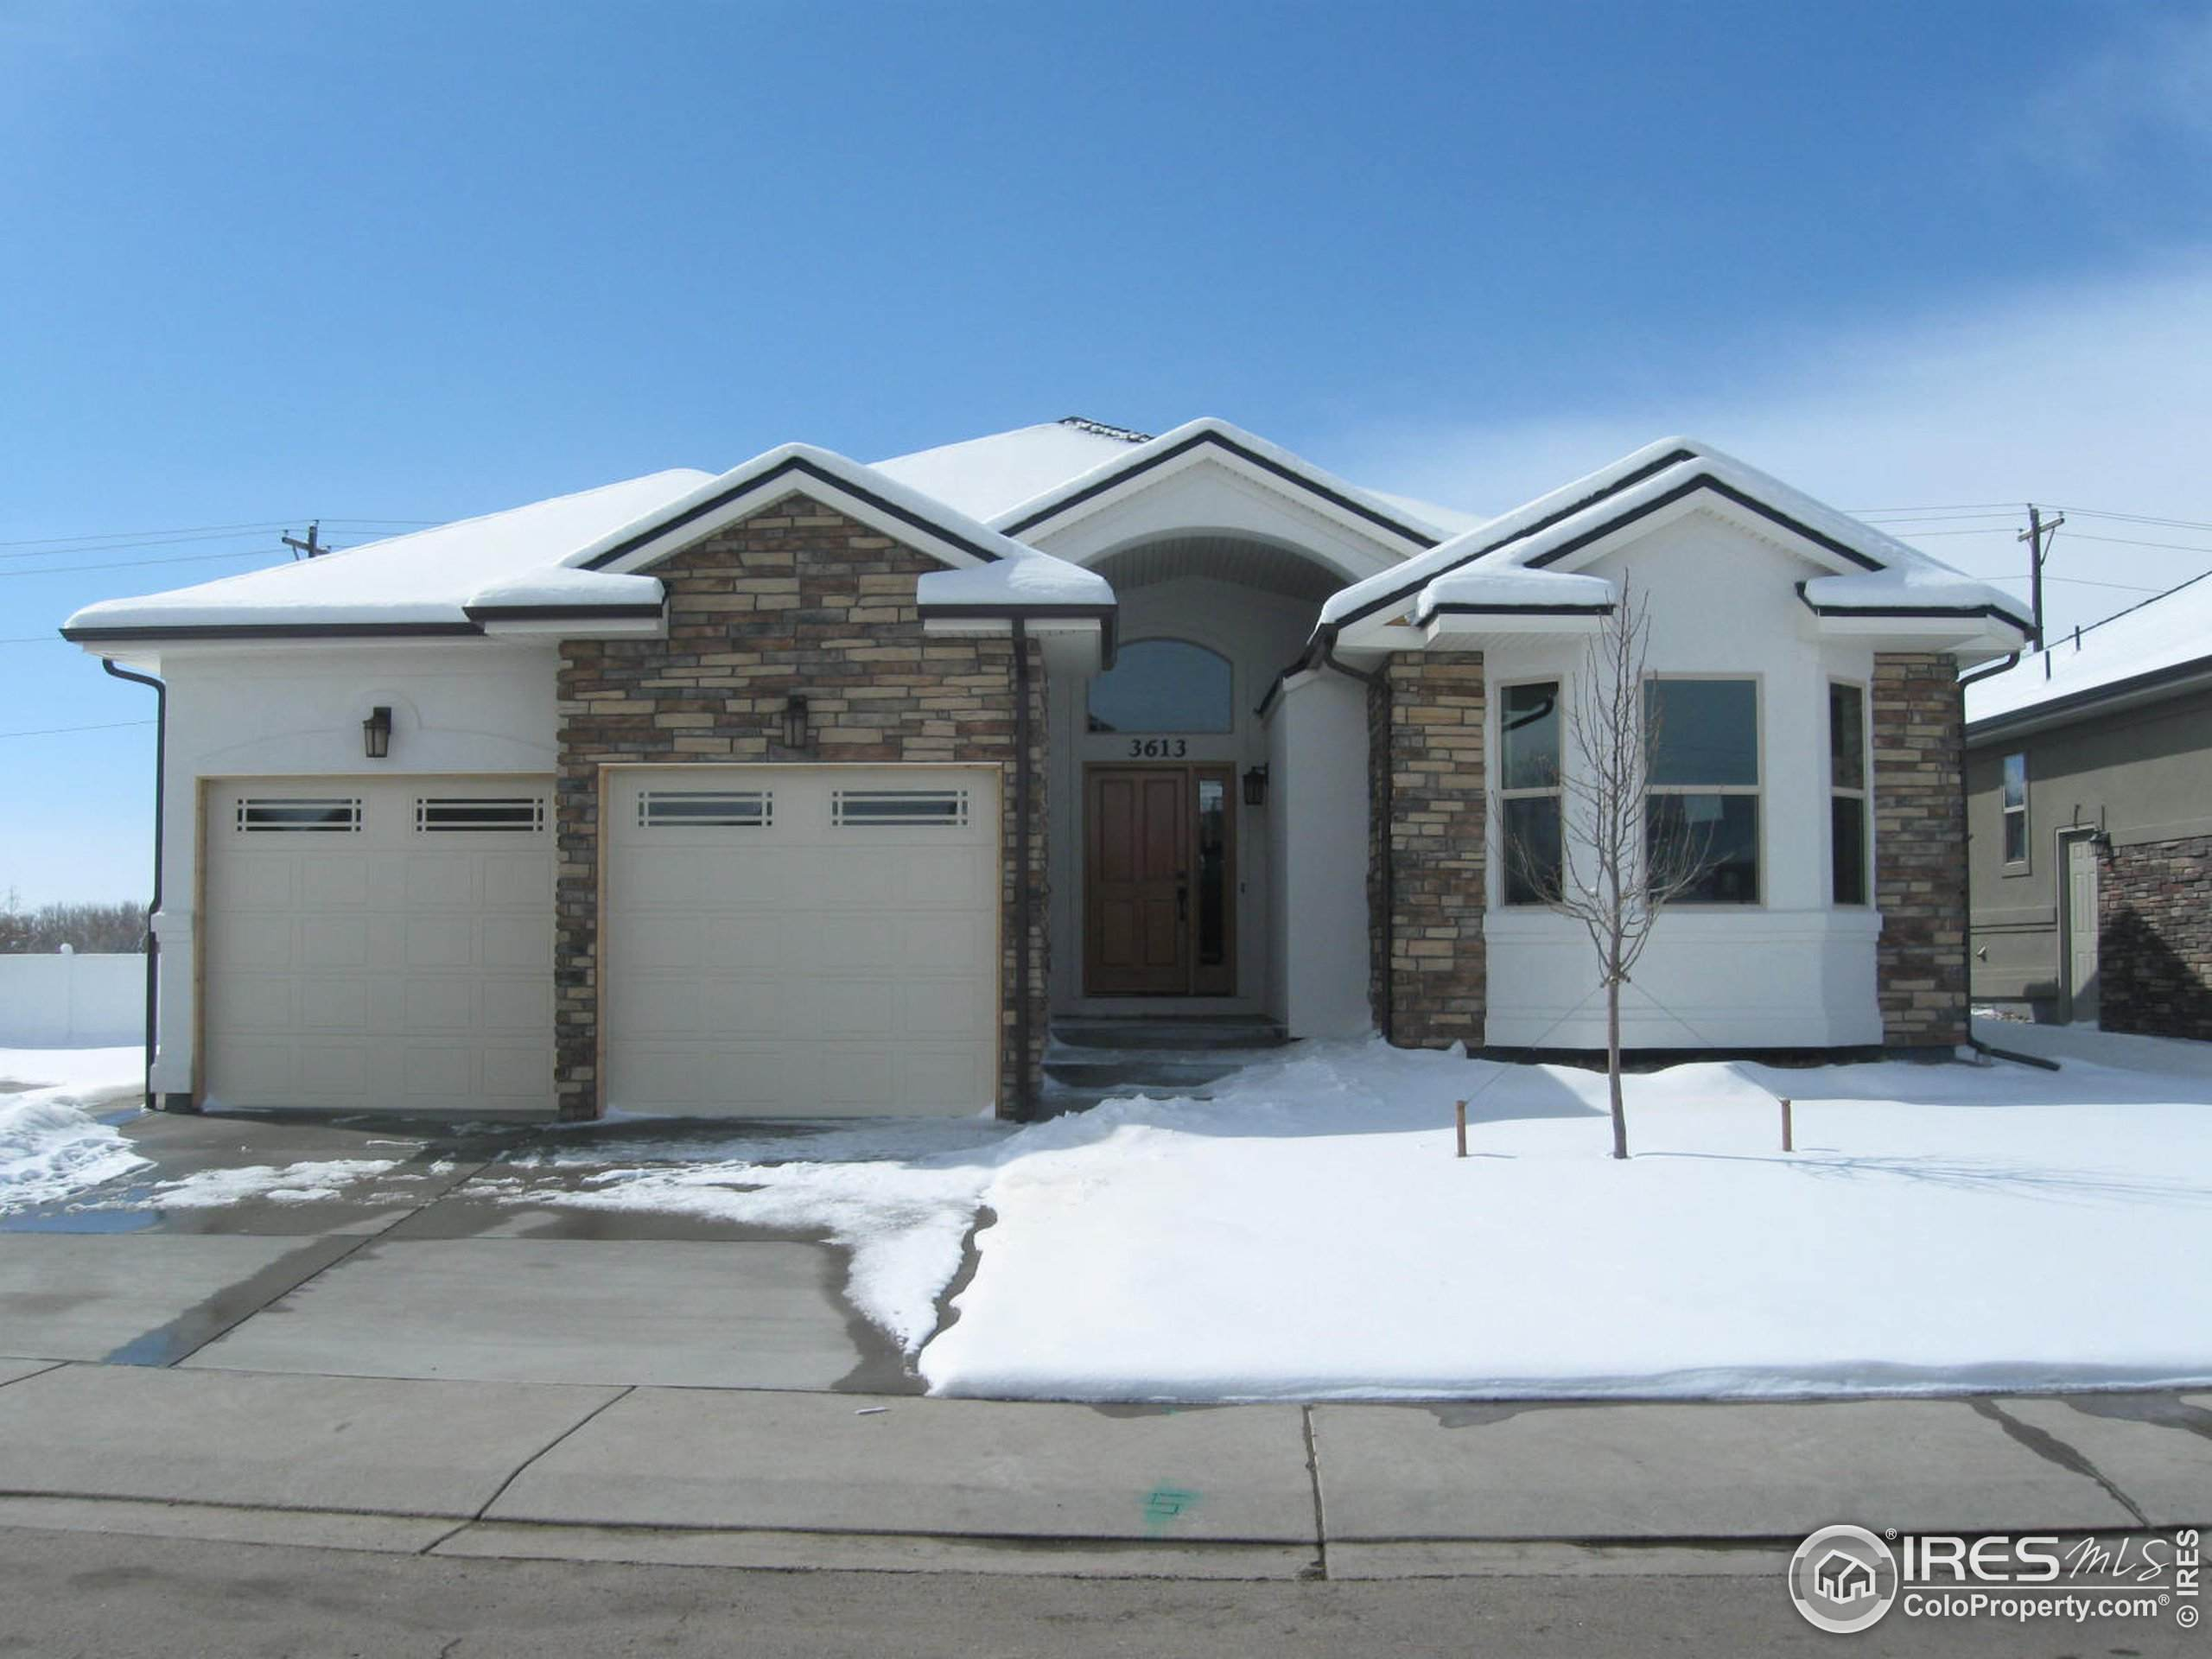 302 River View Ct, Longmont, CO 80501 (#933827) :: The Margolis Team